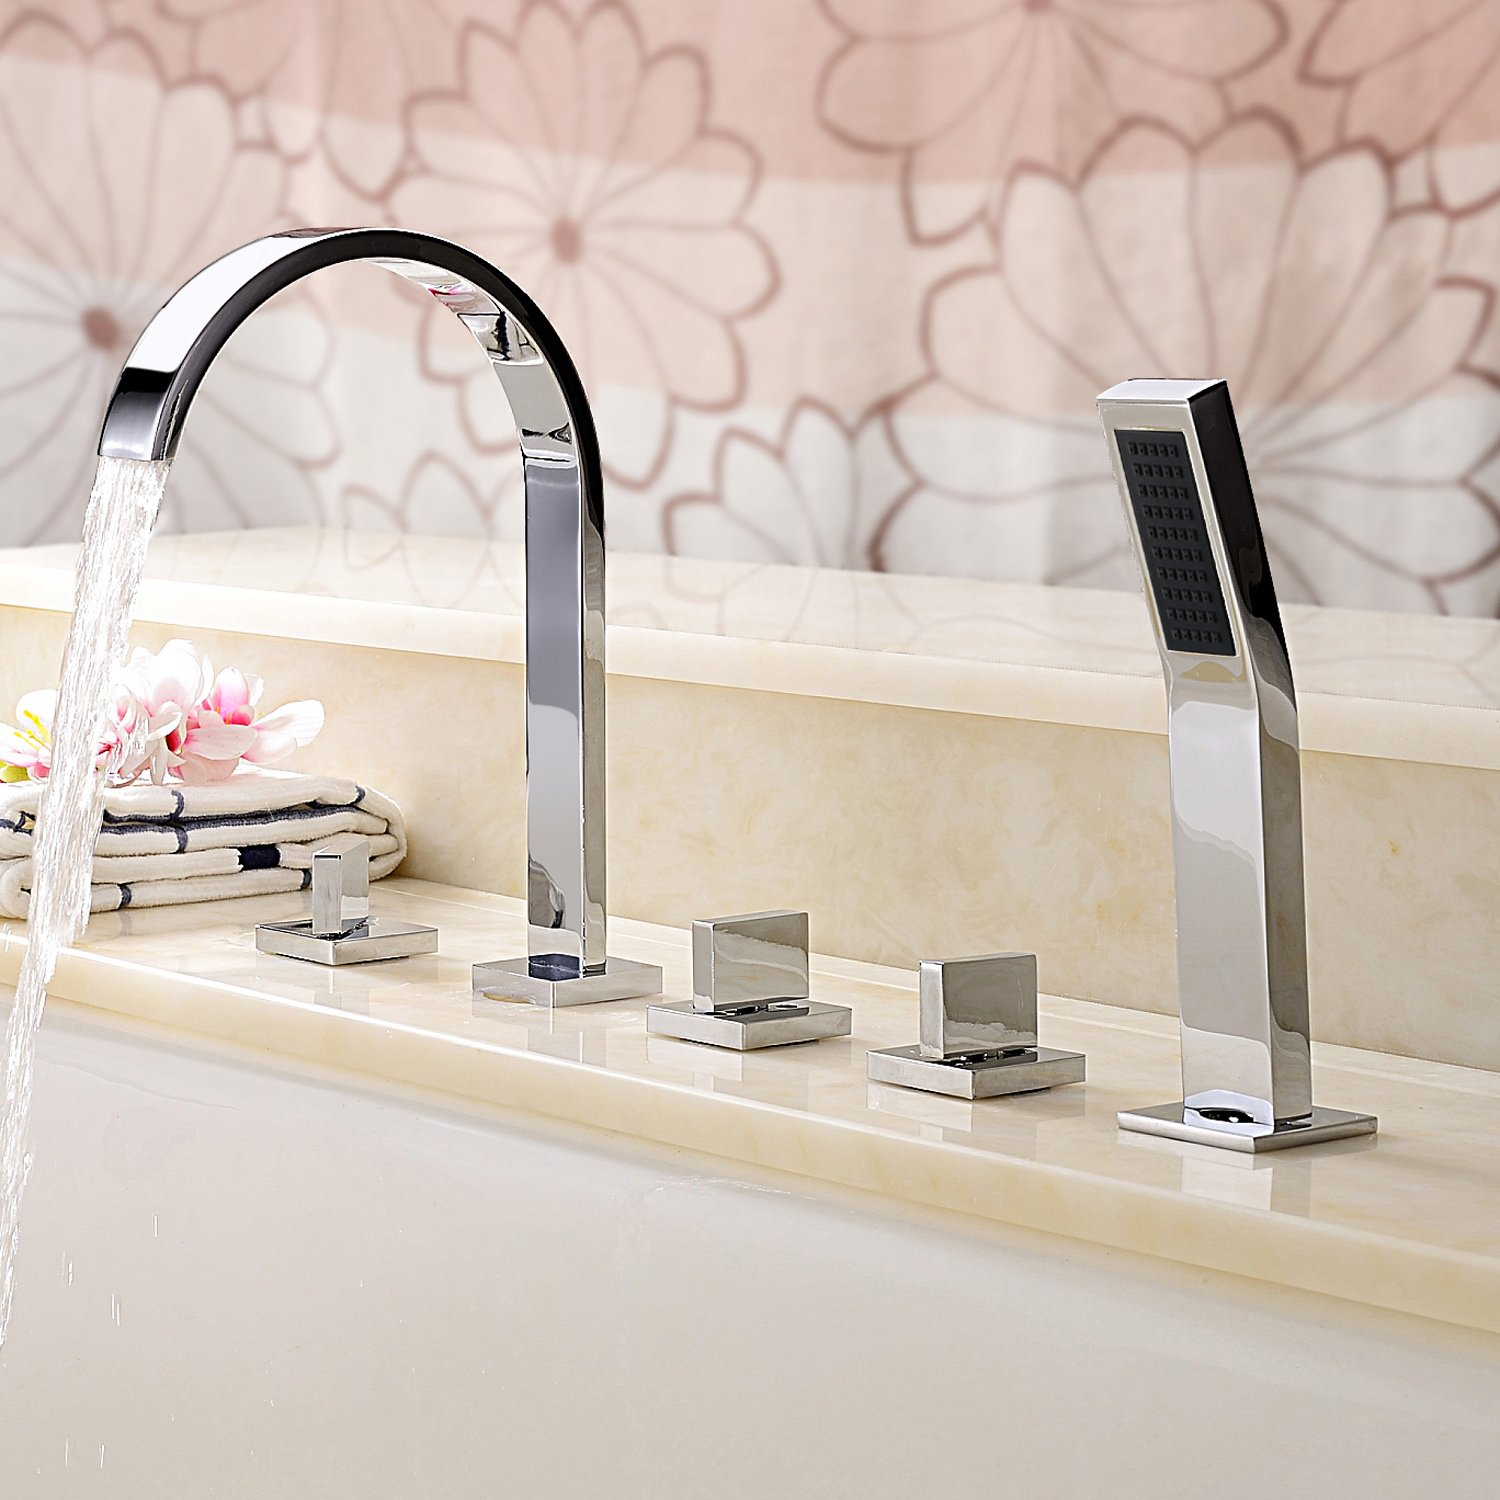 Bathroom Deck Mount Bath Tub Three Handles Widespread Waterfall Bathtub  Faucets With Handheld Shower Sets Tall Curve Long Spout Bar Faucets Square  Hand ...